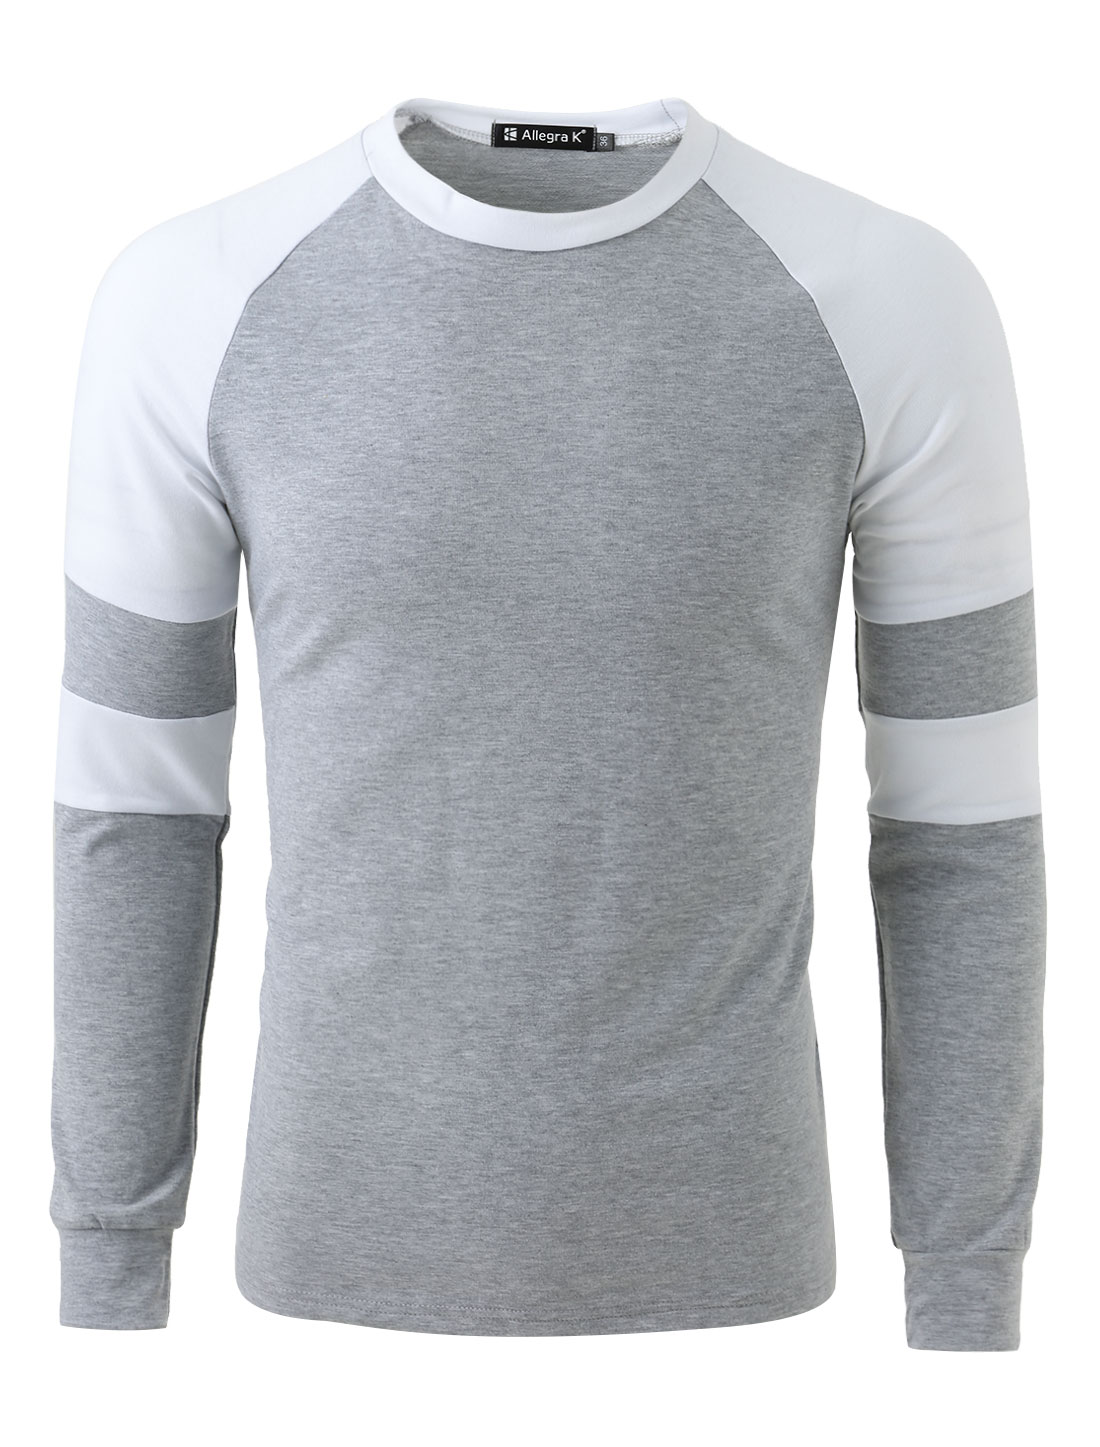 Men Crew Neck Contrast Color Raglan Sleeves Tee Shirt Light Gray S